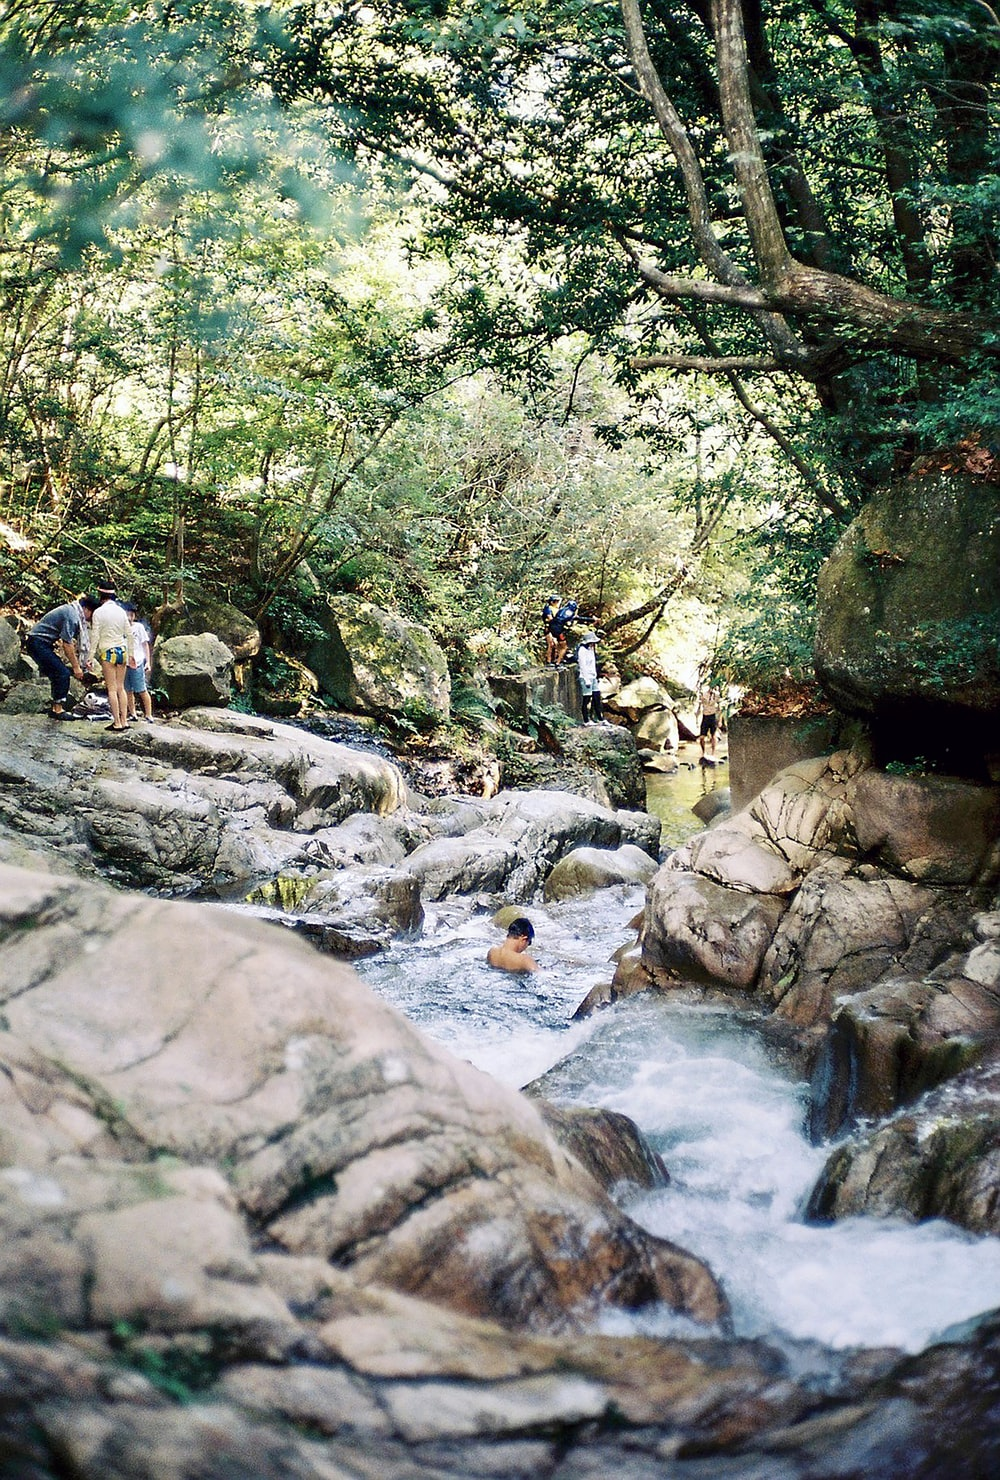 people walking on rocky river during daytime